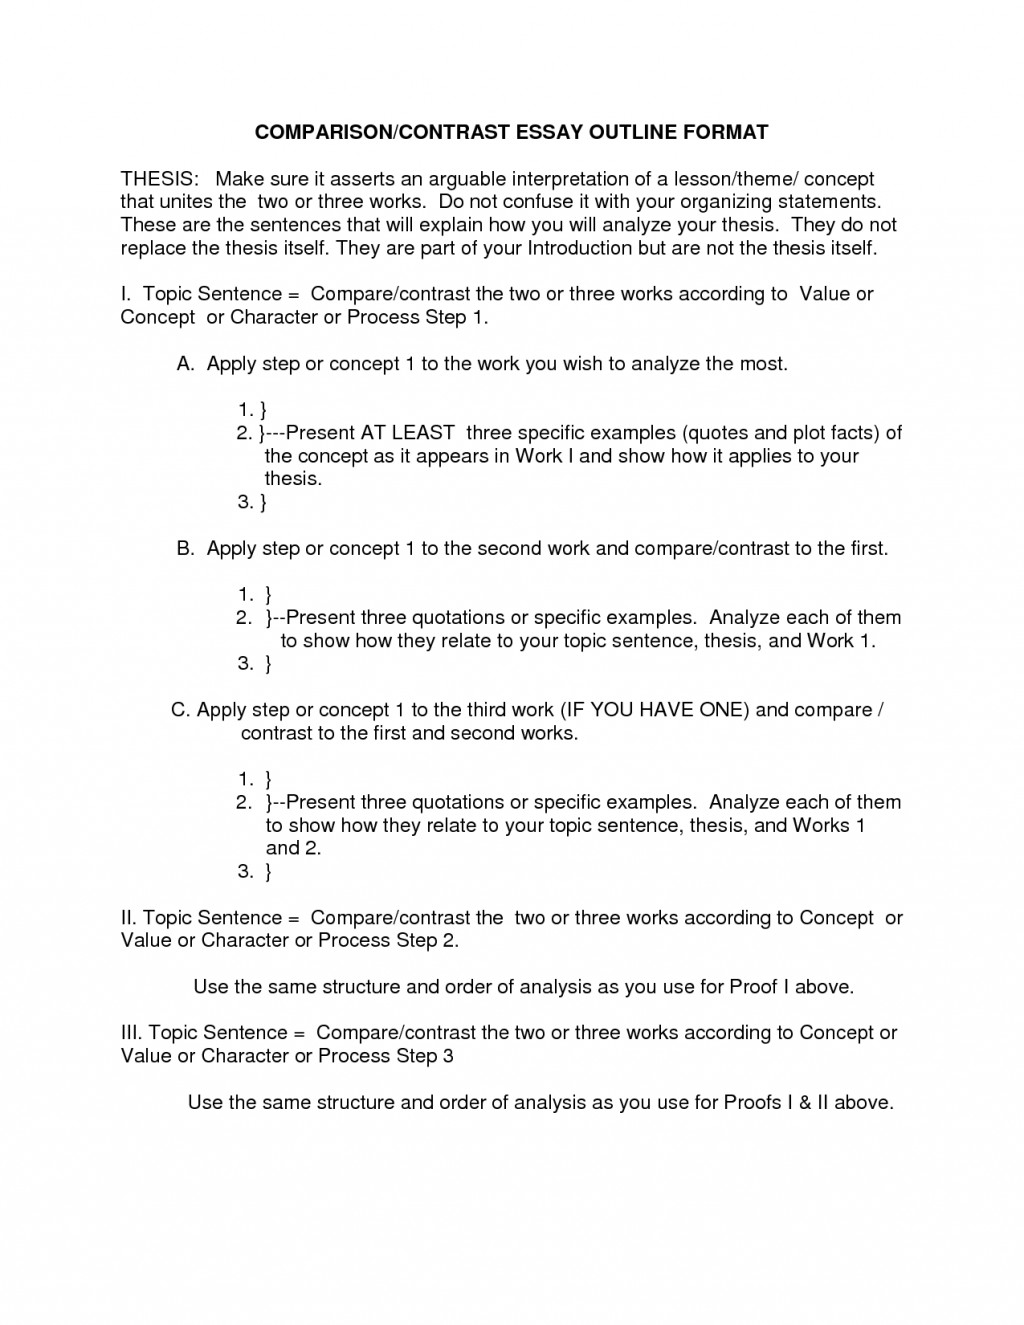 021 Outline Format 2 How To Compare And Contrast Essay Awesome A Create An For Large